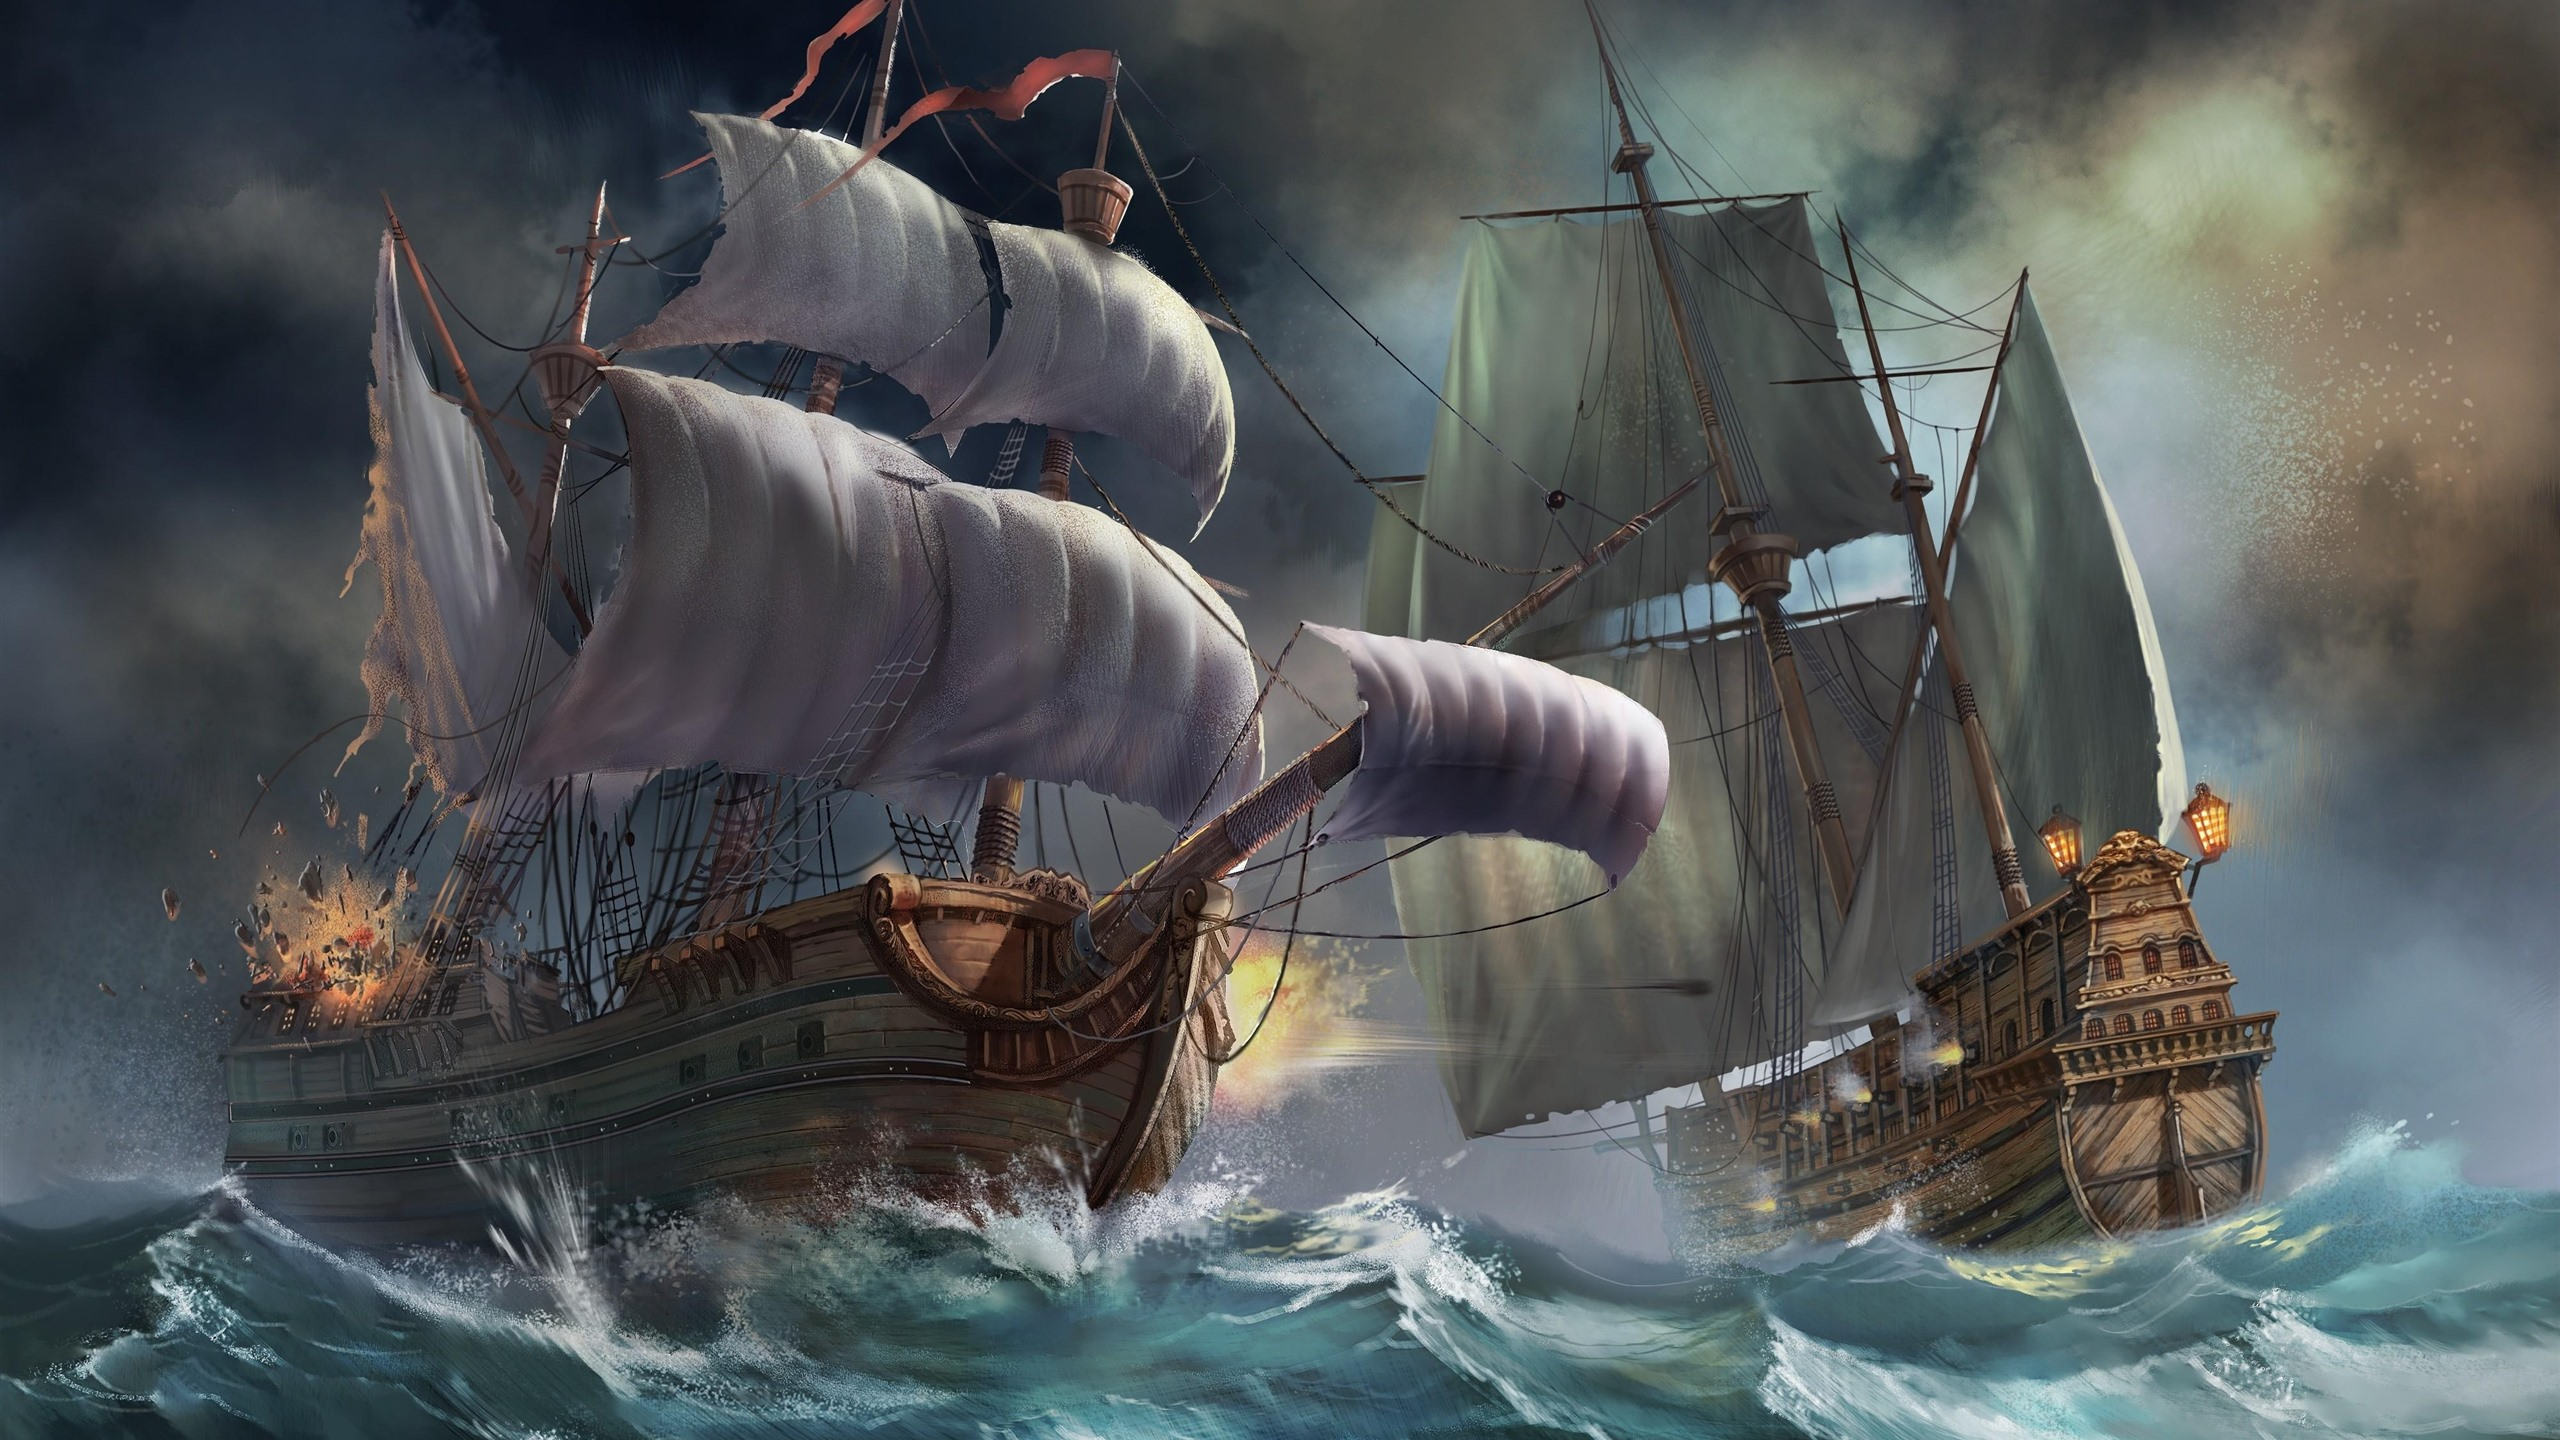 Sailboats Sea Waves Battle Art Picture 1125x2436 Iphone